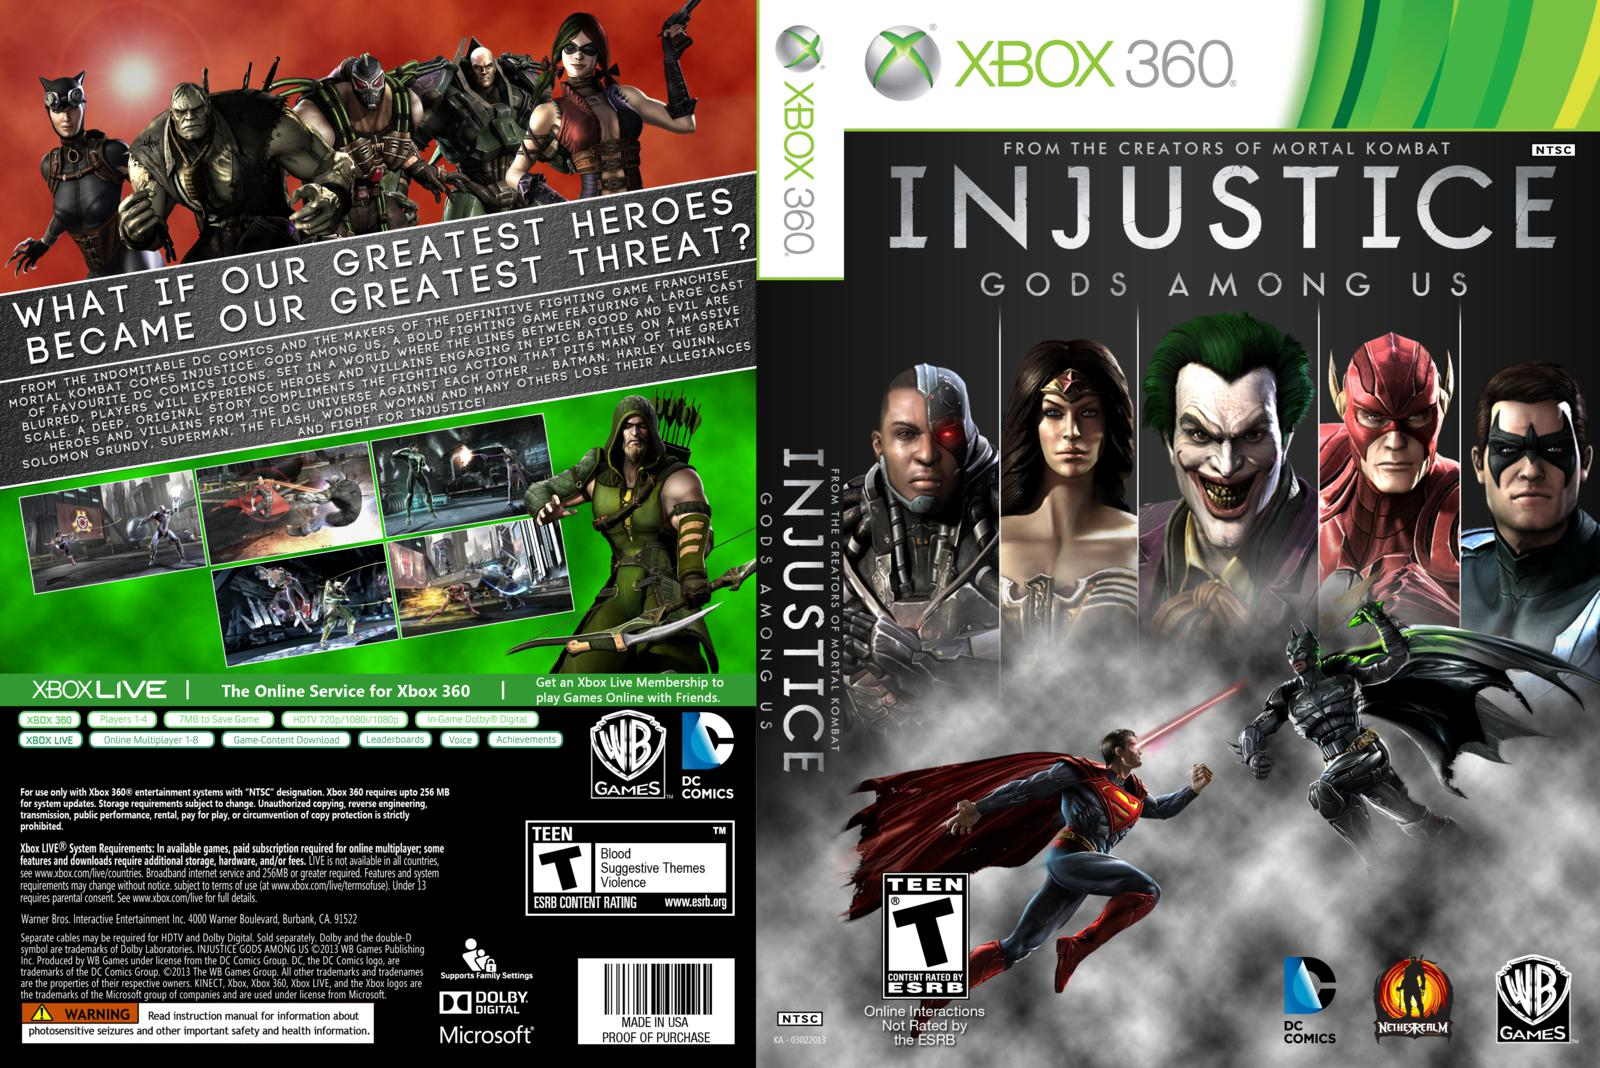 Games covers injustice gods among us cover xbox 360